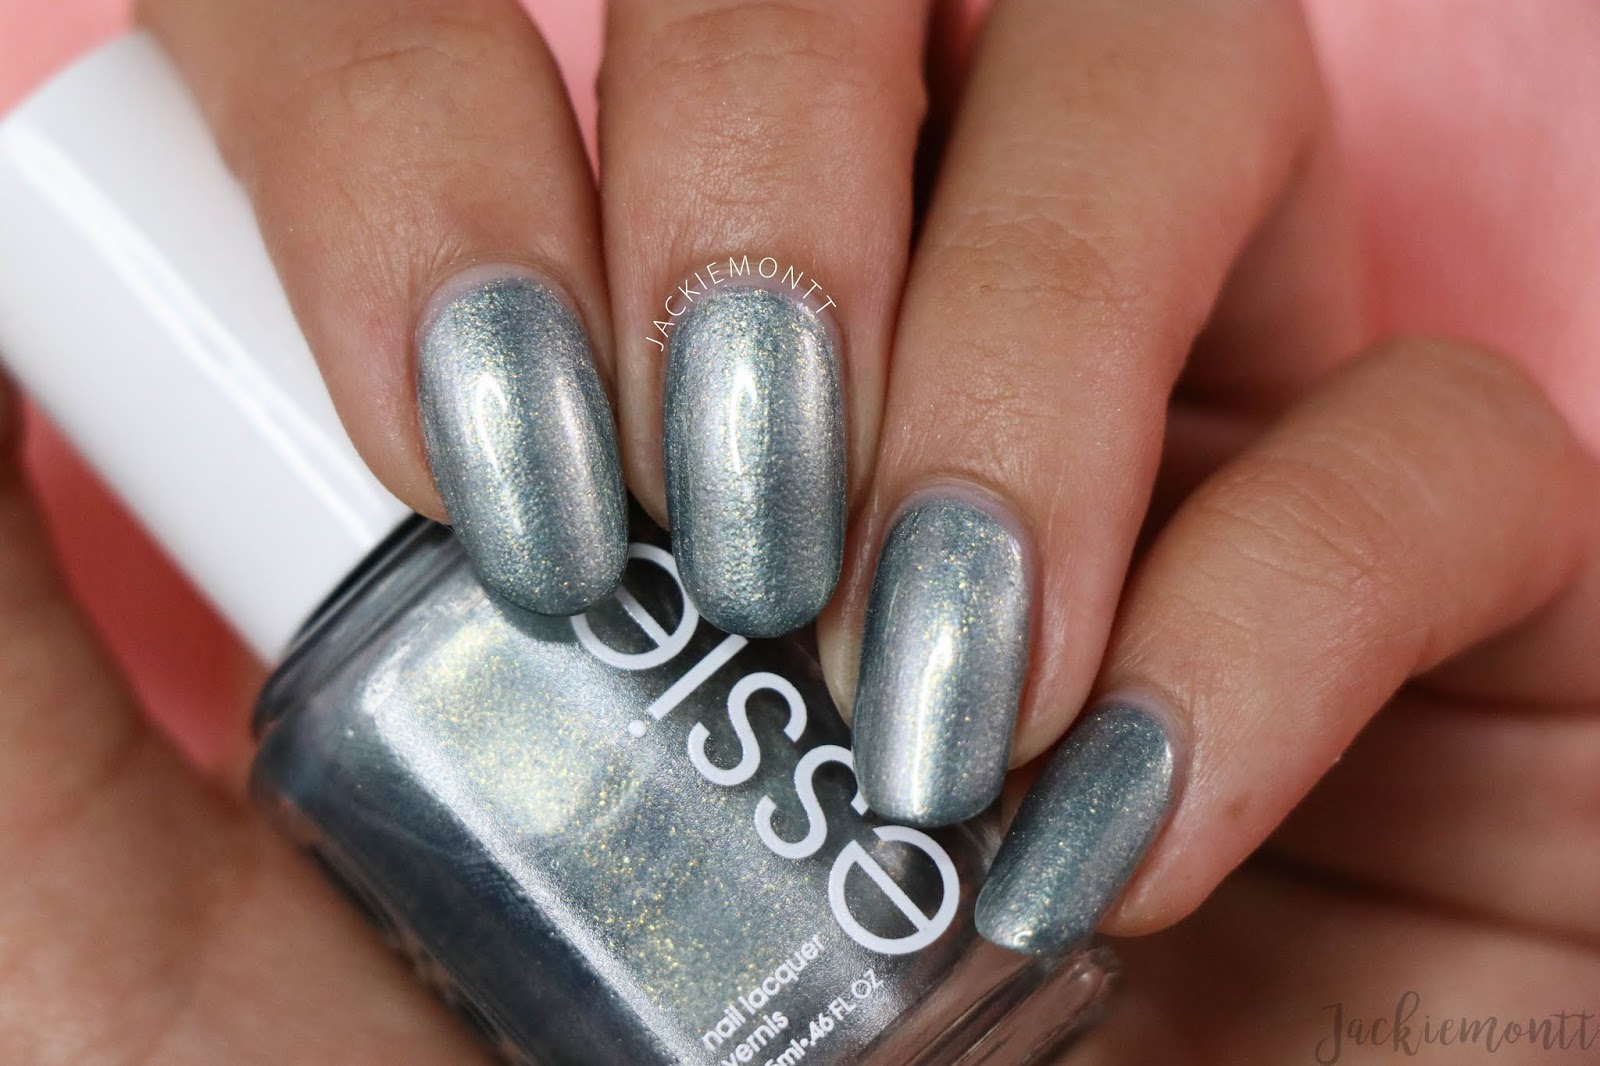 Essie Spring 2019 Collection Swatches And Review Jackiemontt